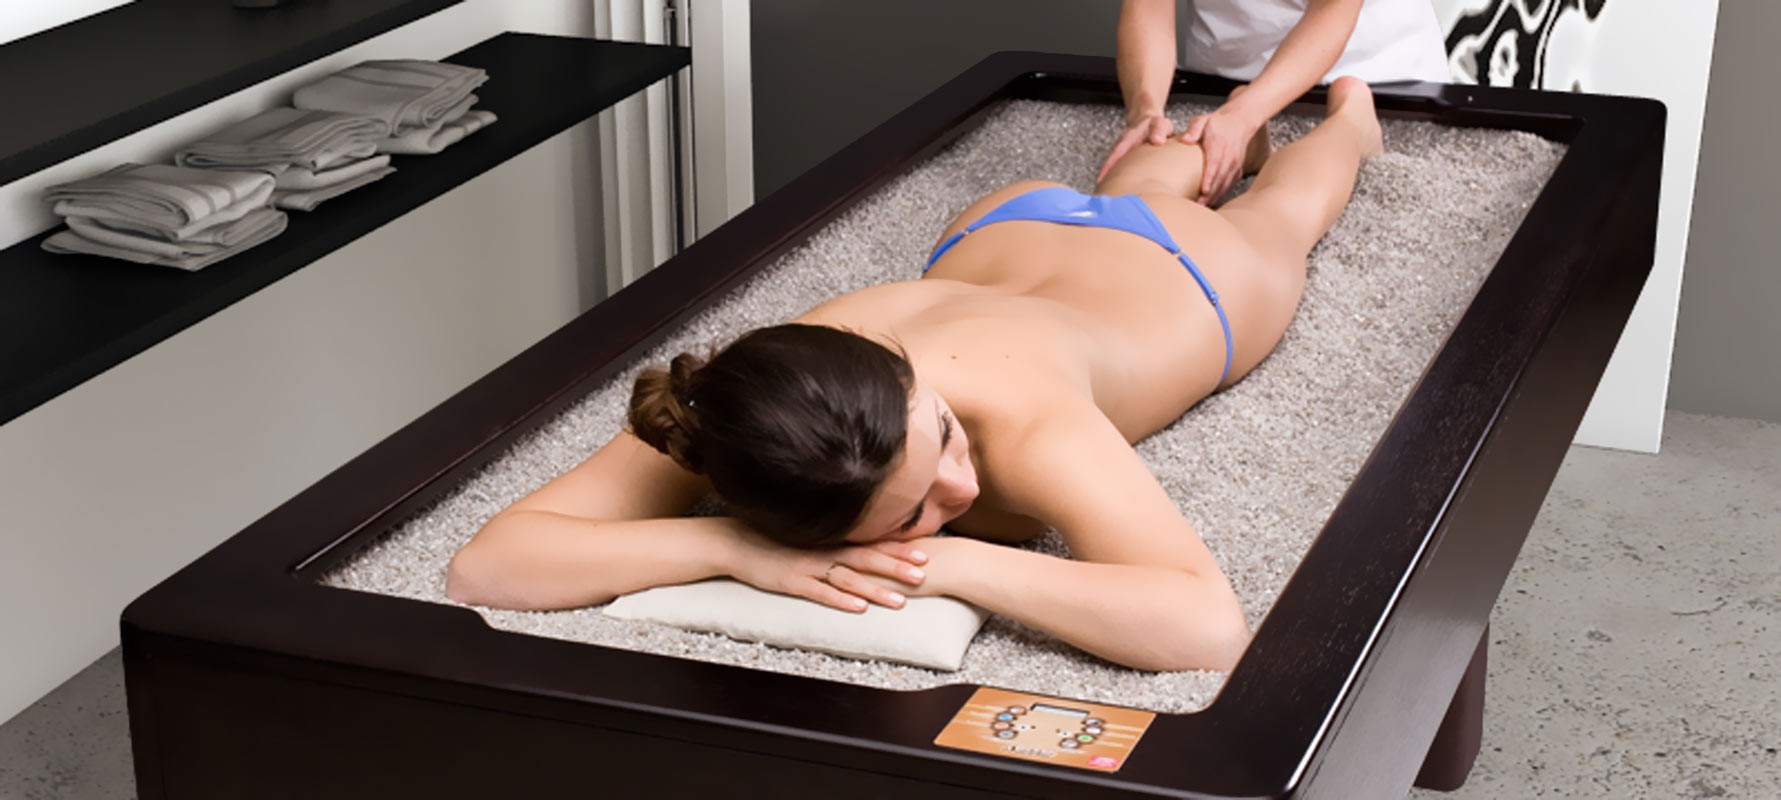 Les tables de massage